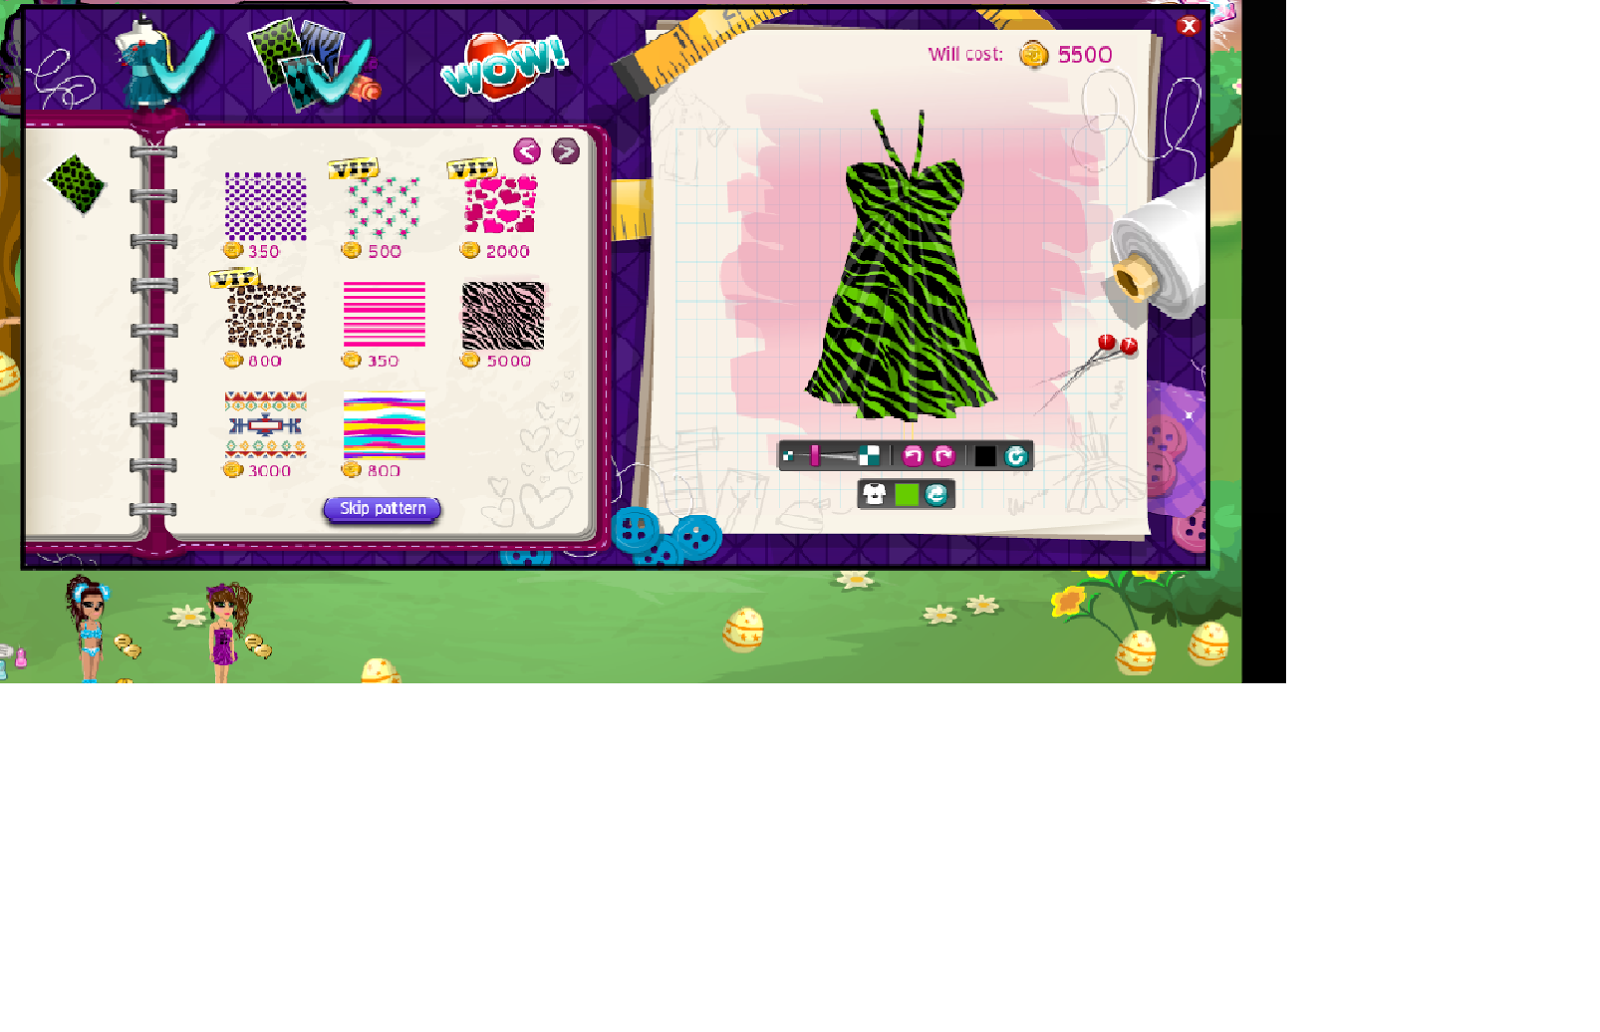 Msp Diamonds And Starcoins Adder No Survey Link Ch At Mspcheat Apps